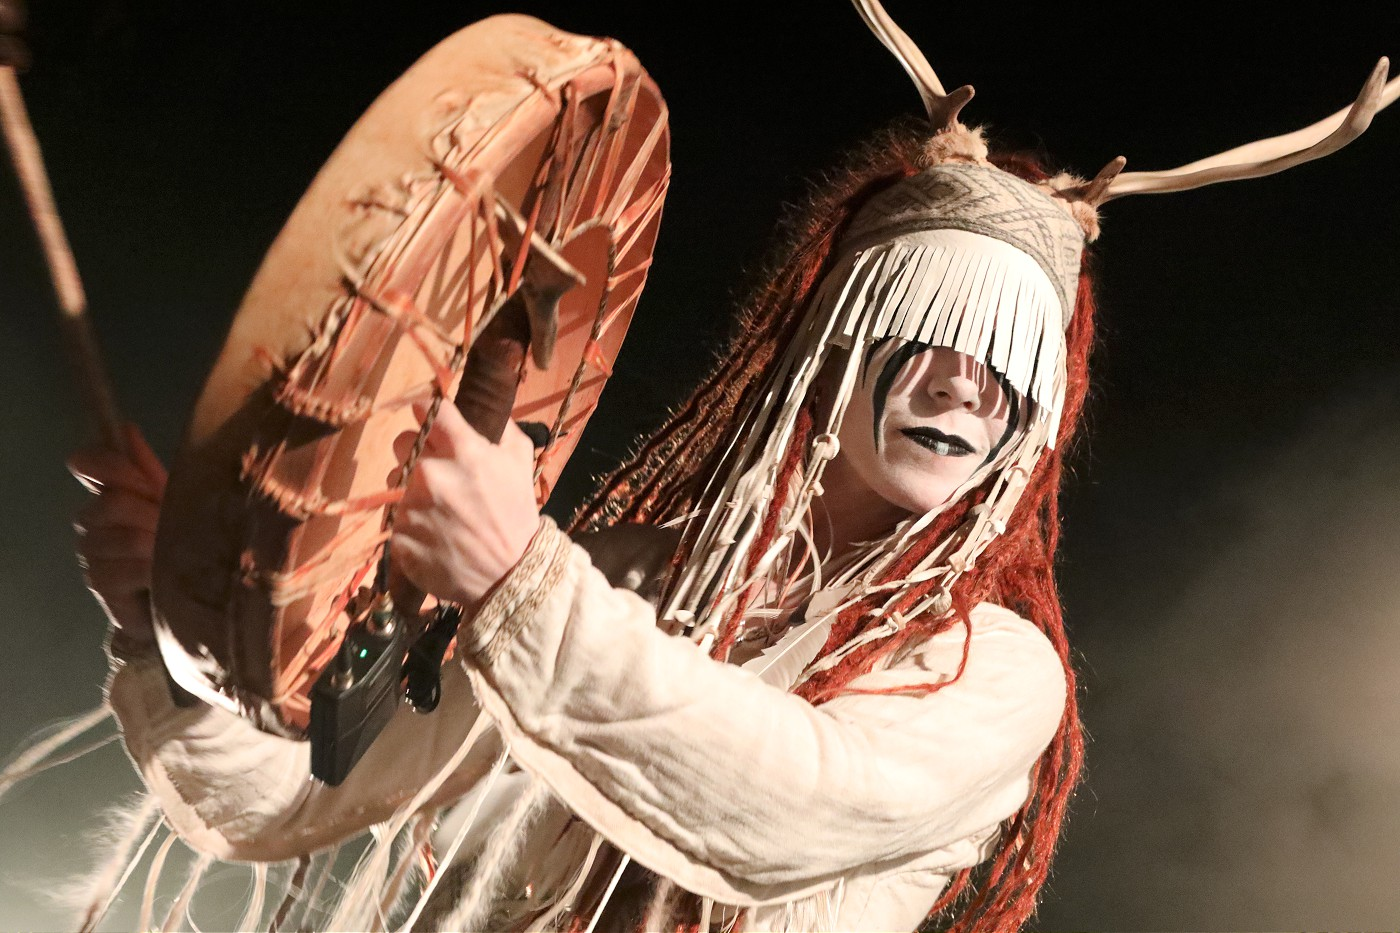 Heilung (Photo by JJ Koczan)